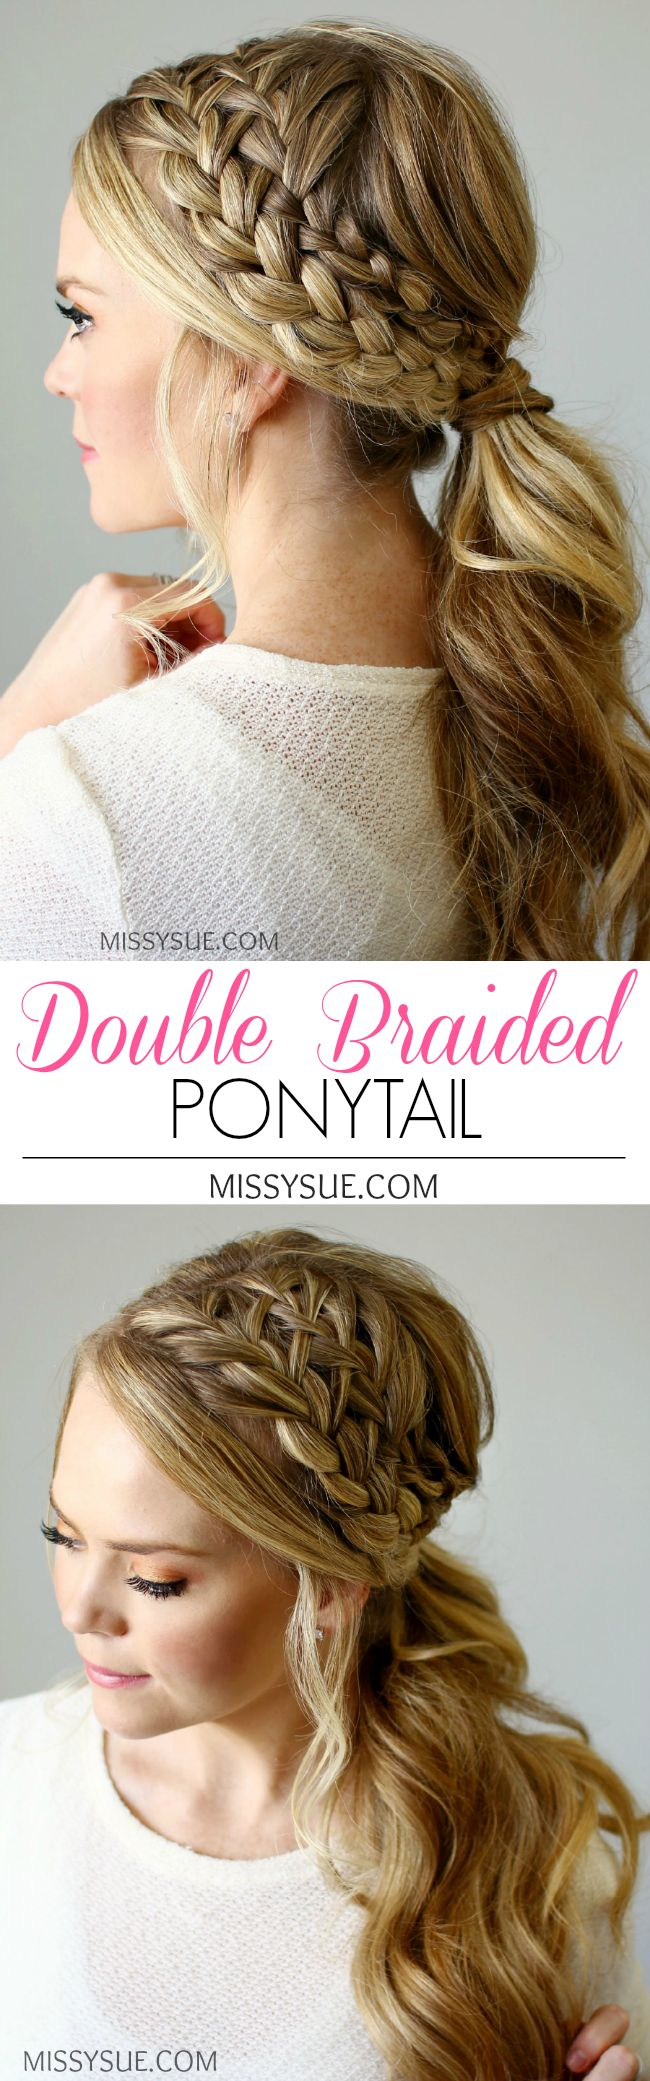 Astounding 1000 Images About Prom Hairstyles On Pinterest Updo Prom Hair Hairstyle Inspiration Daily Dogsangcom